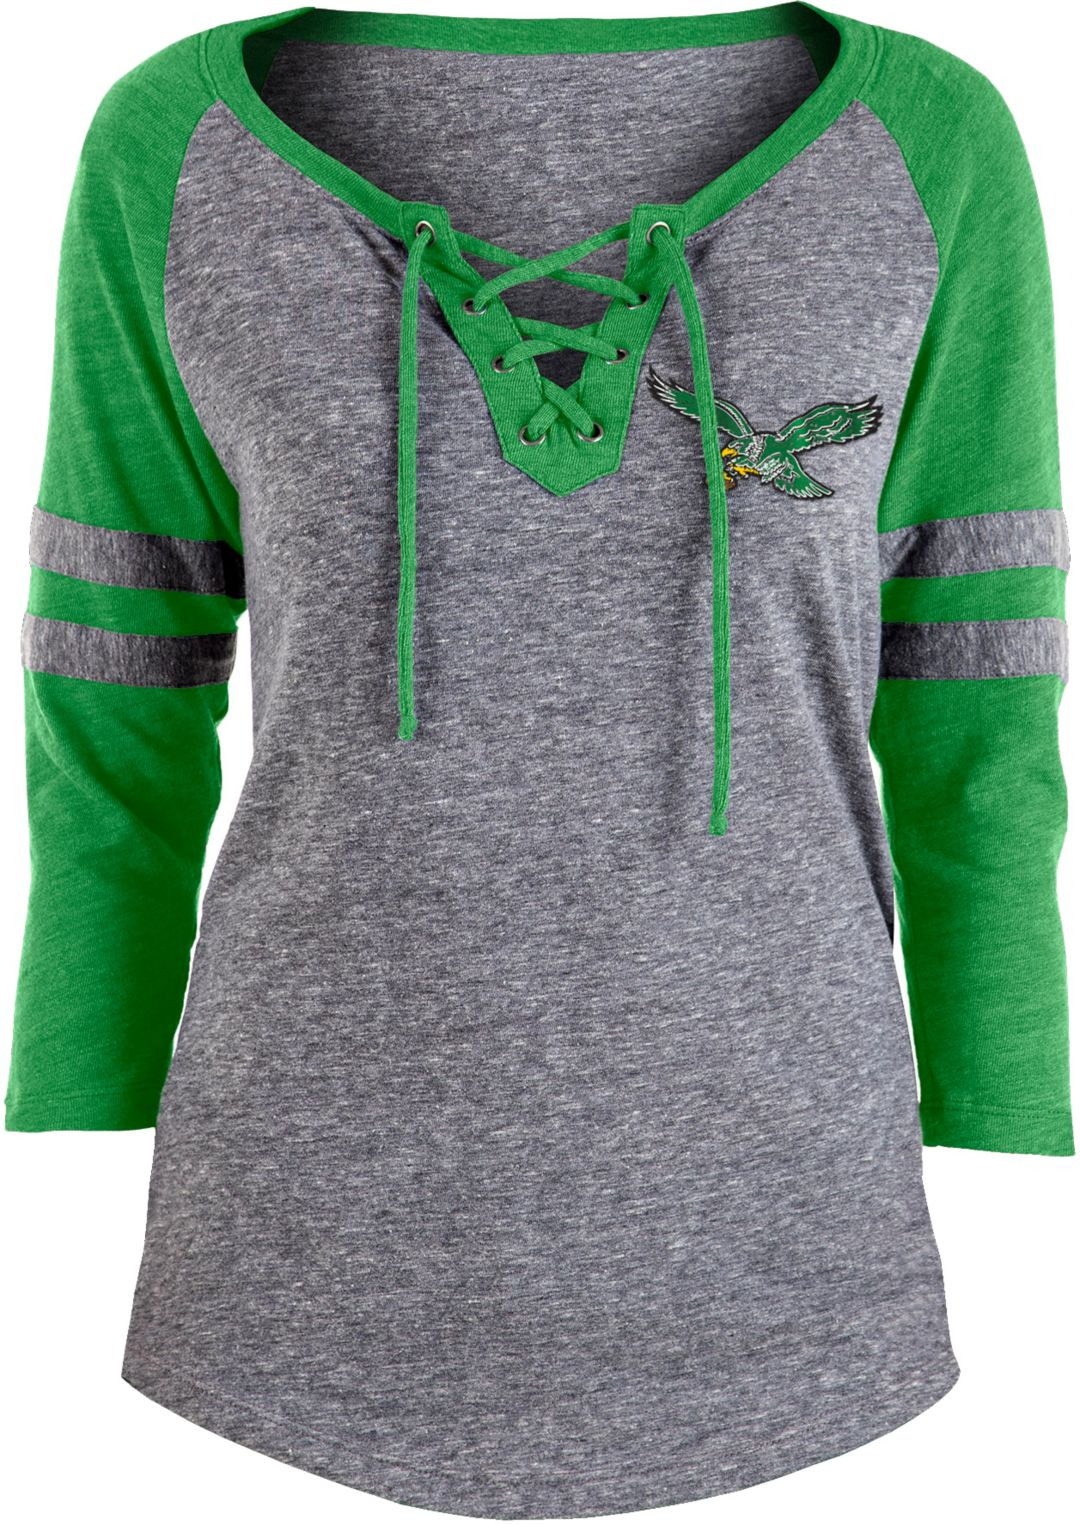 online retailer 7c58d 0b03a NFL Team Apparel Women's Philadelphia Eagles Trilace Grey Raglan Shirt